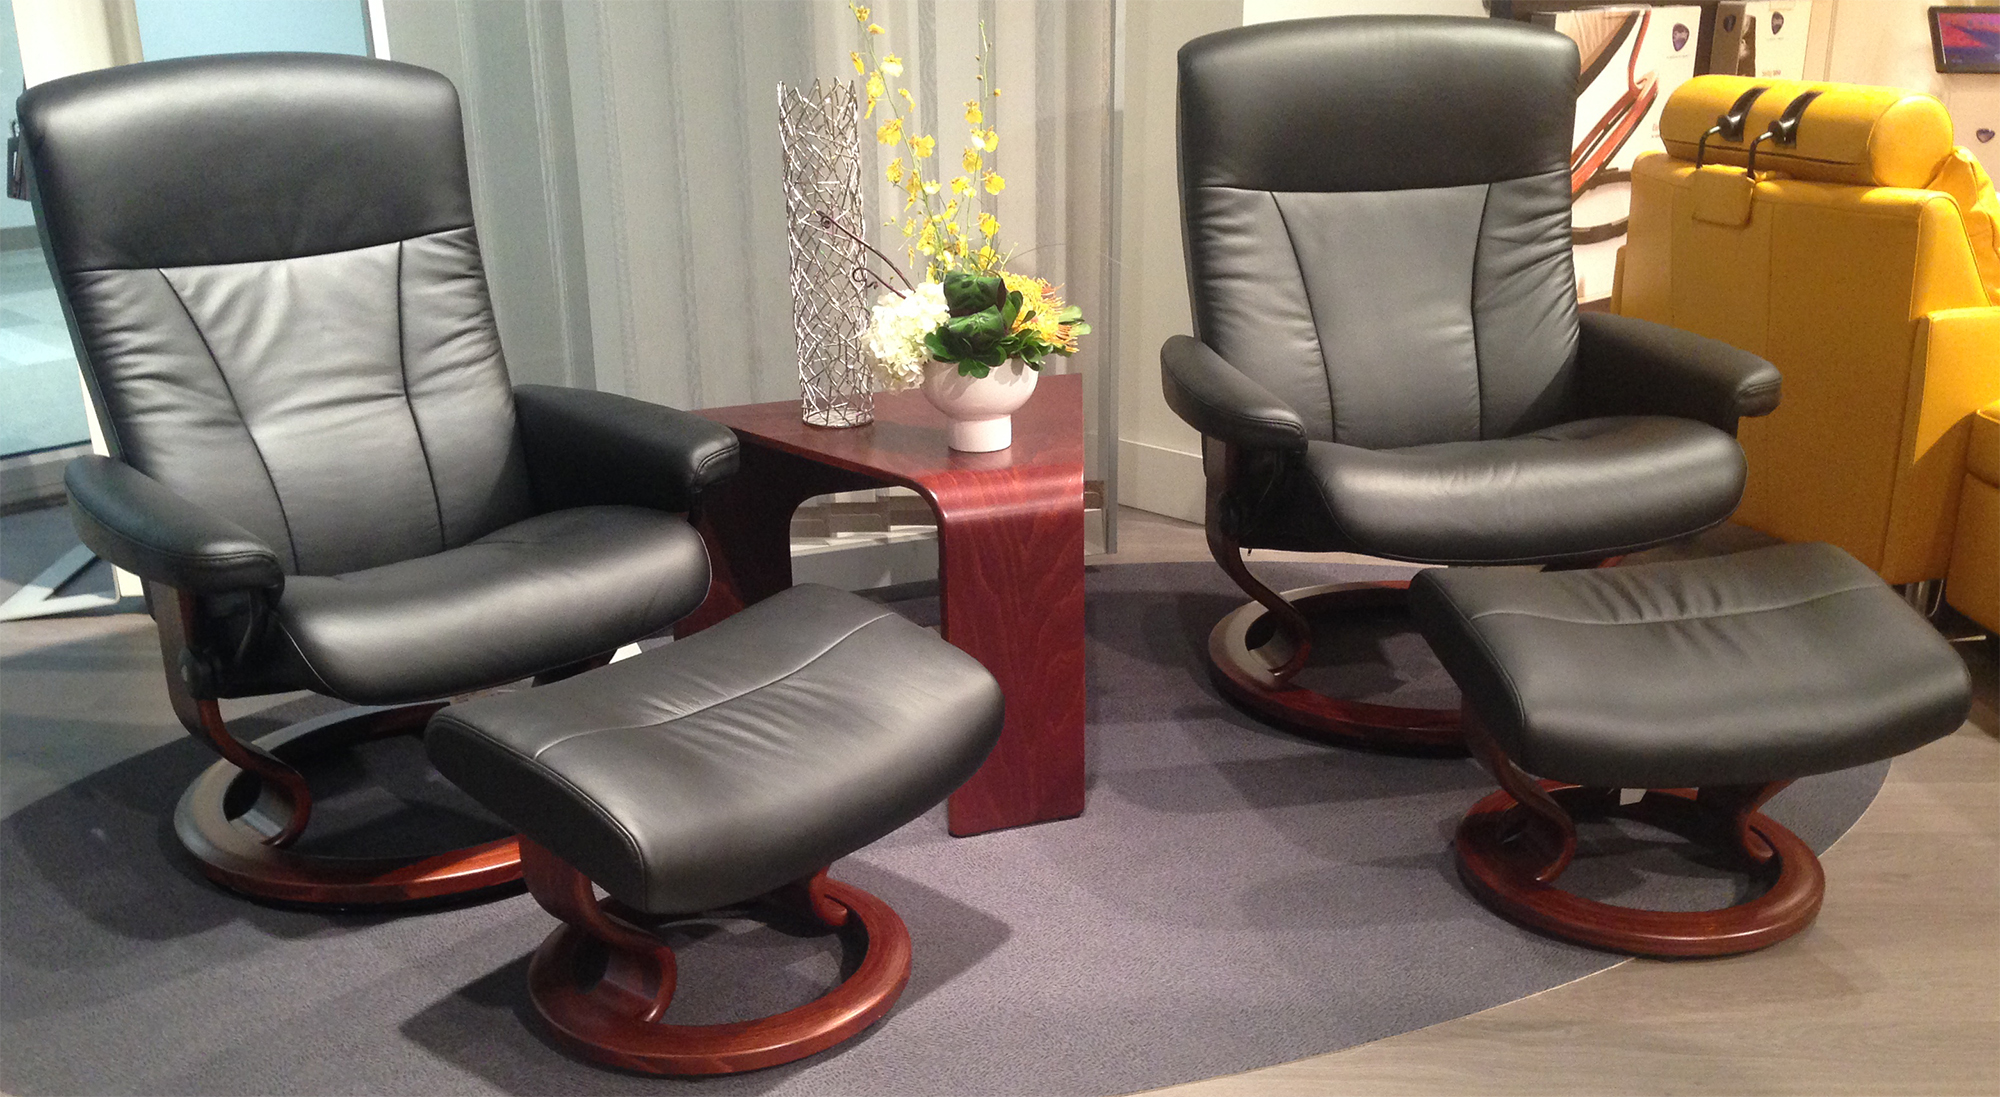 Stressless President Recliner Chair And Ottoman In Paloma Black Leather